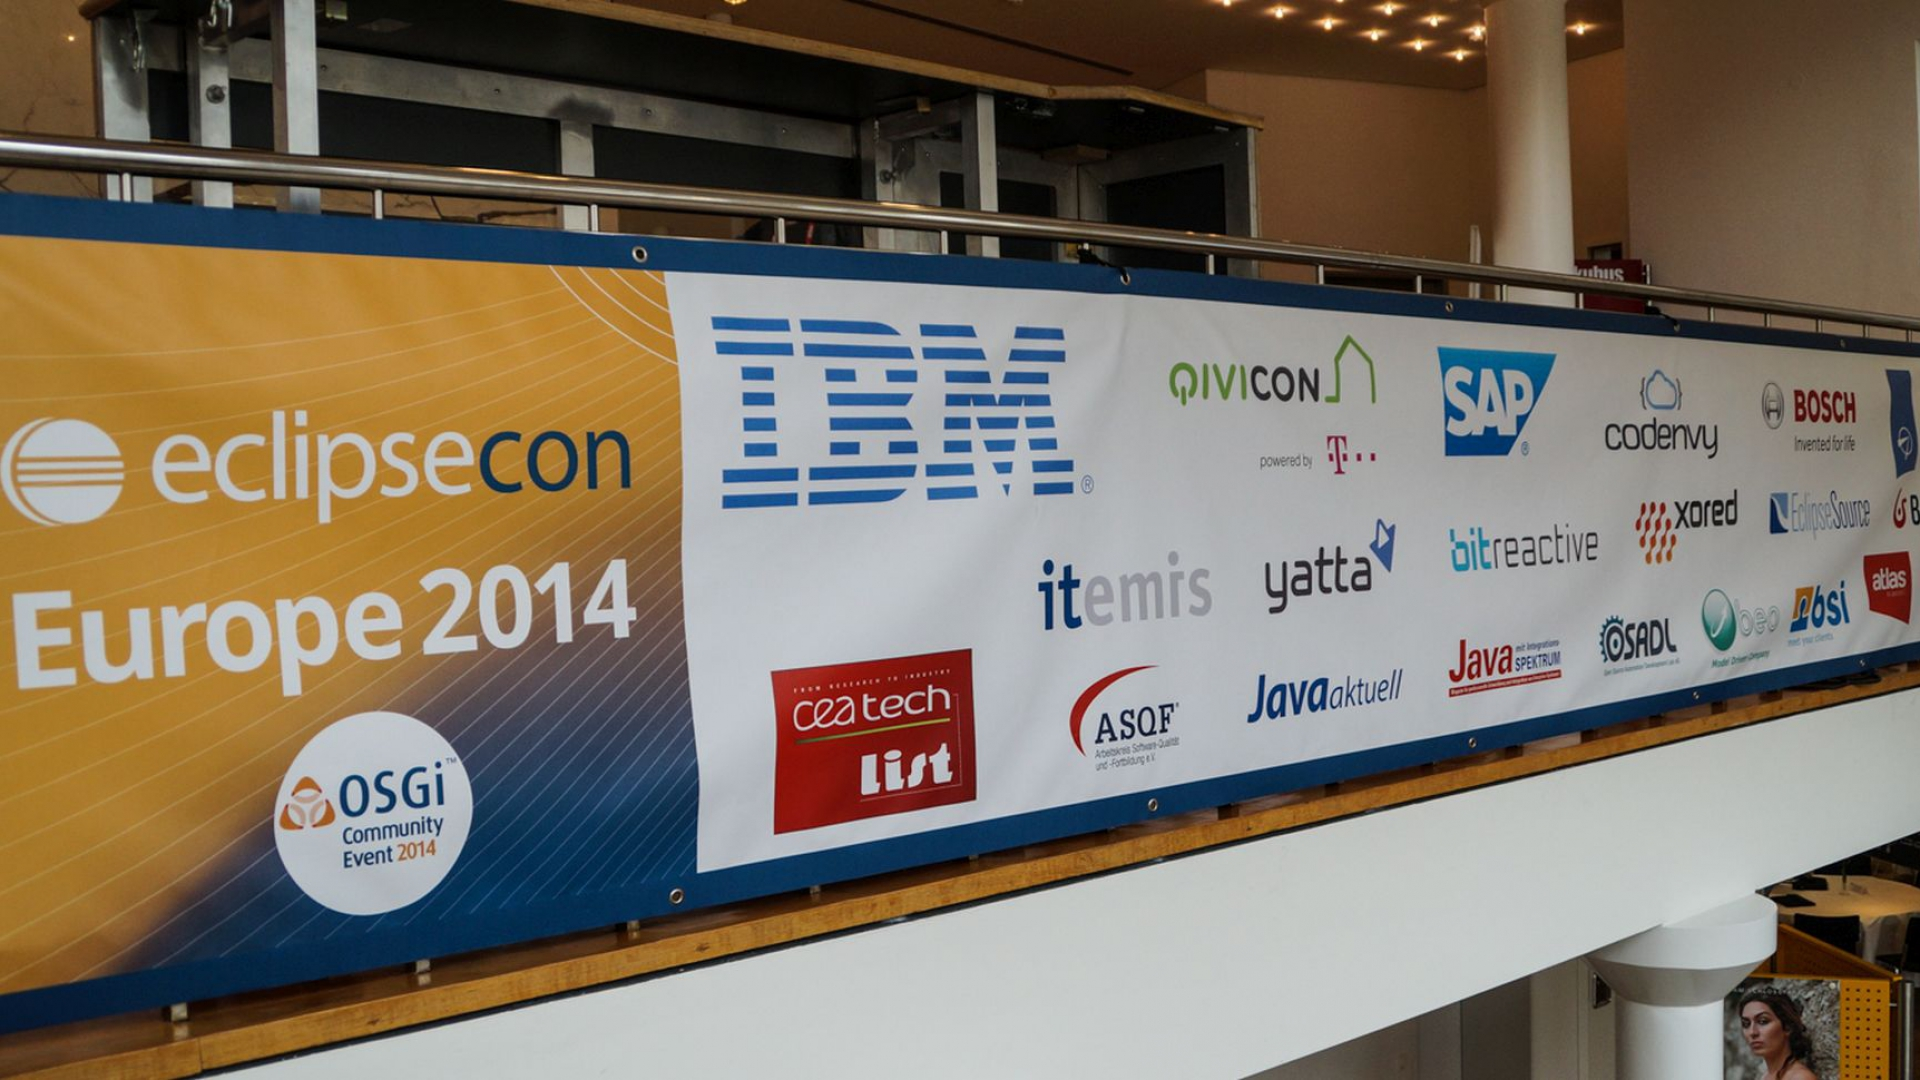 Participation at EclipseCon Europe 2014